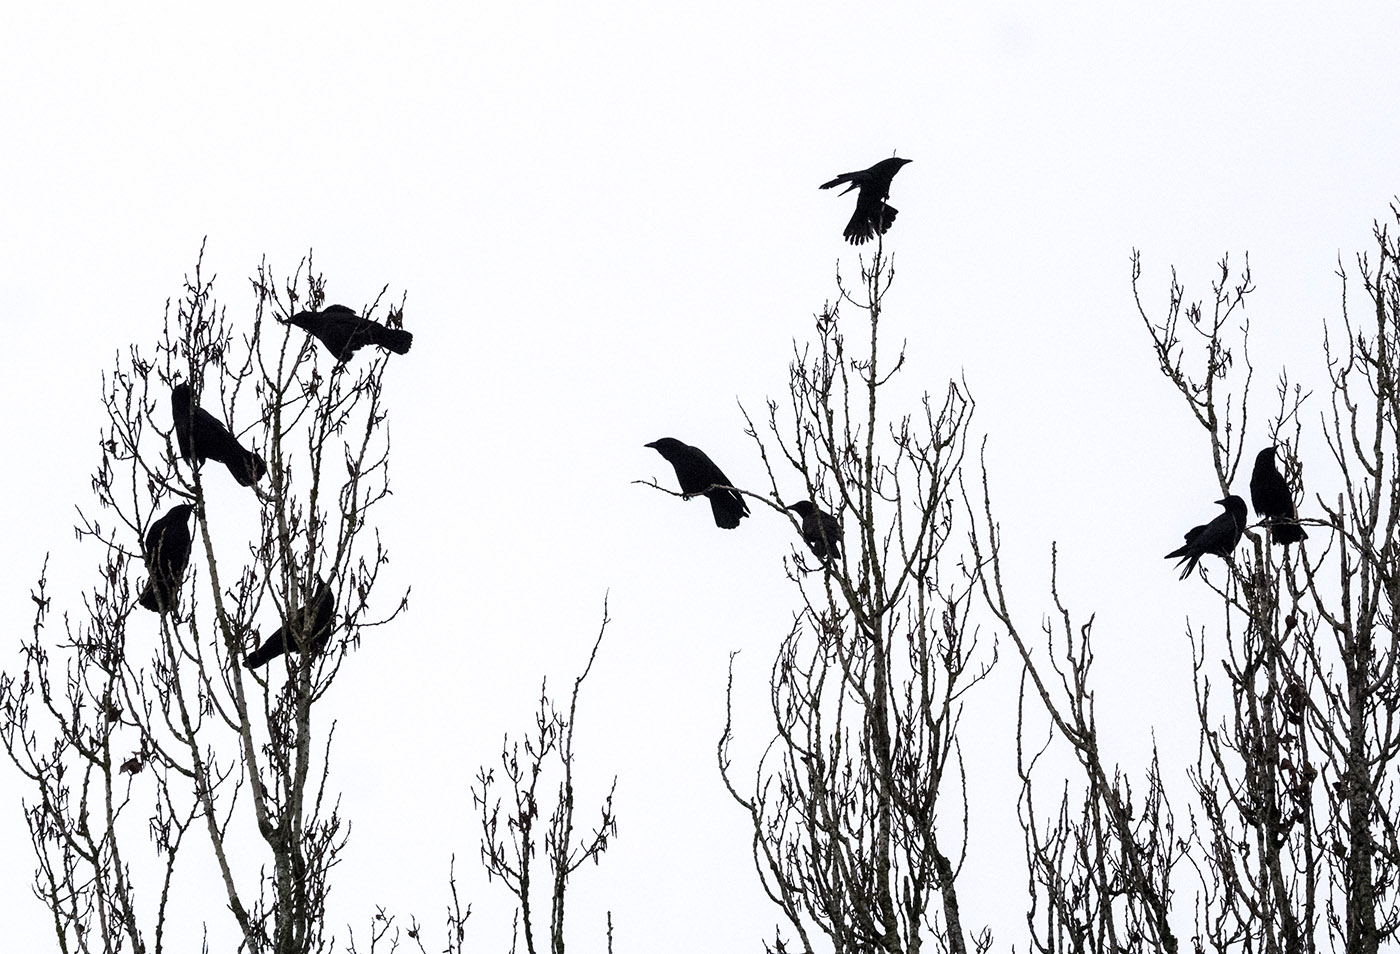 Crows in the Poplars